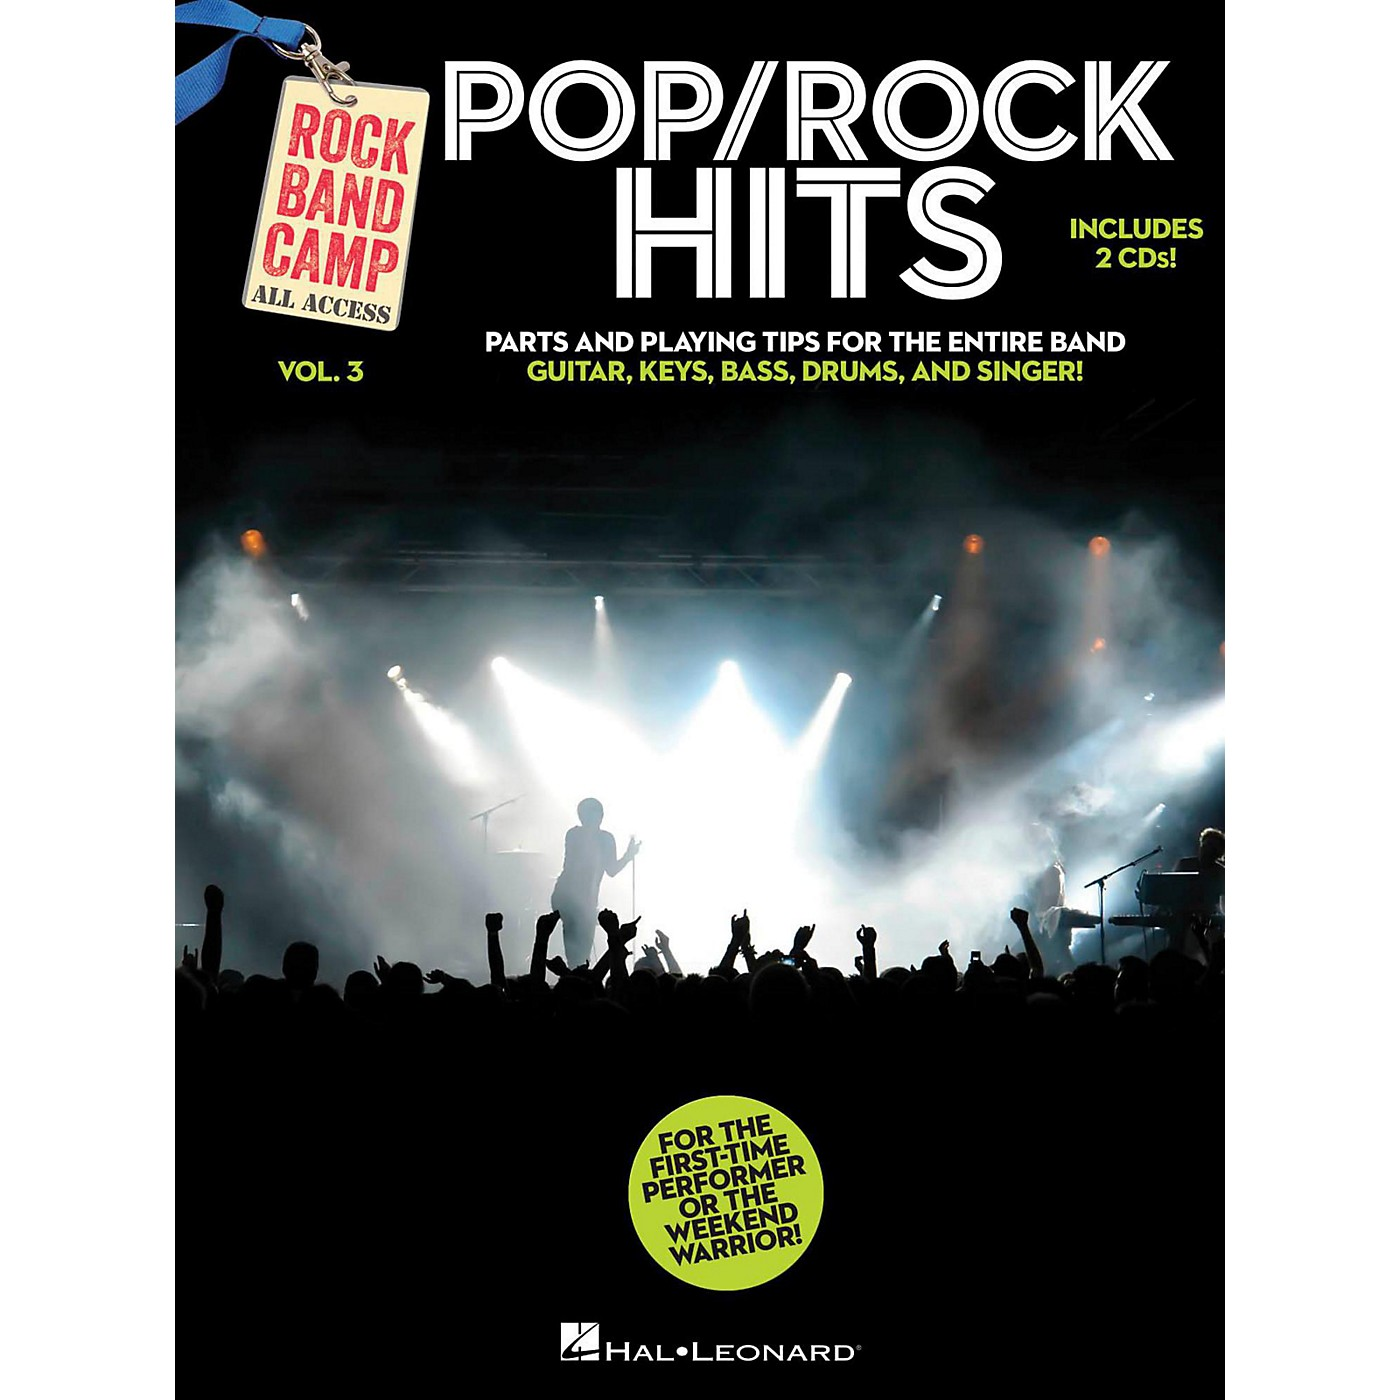 Hal Leonard Pop/Rock Hits - Rock Band Camp Vol. 3 (Book/2-CD Pack) Vocal, Guitar, Keys, Bass, Drums thumbnail